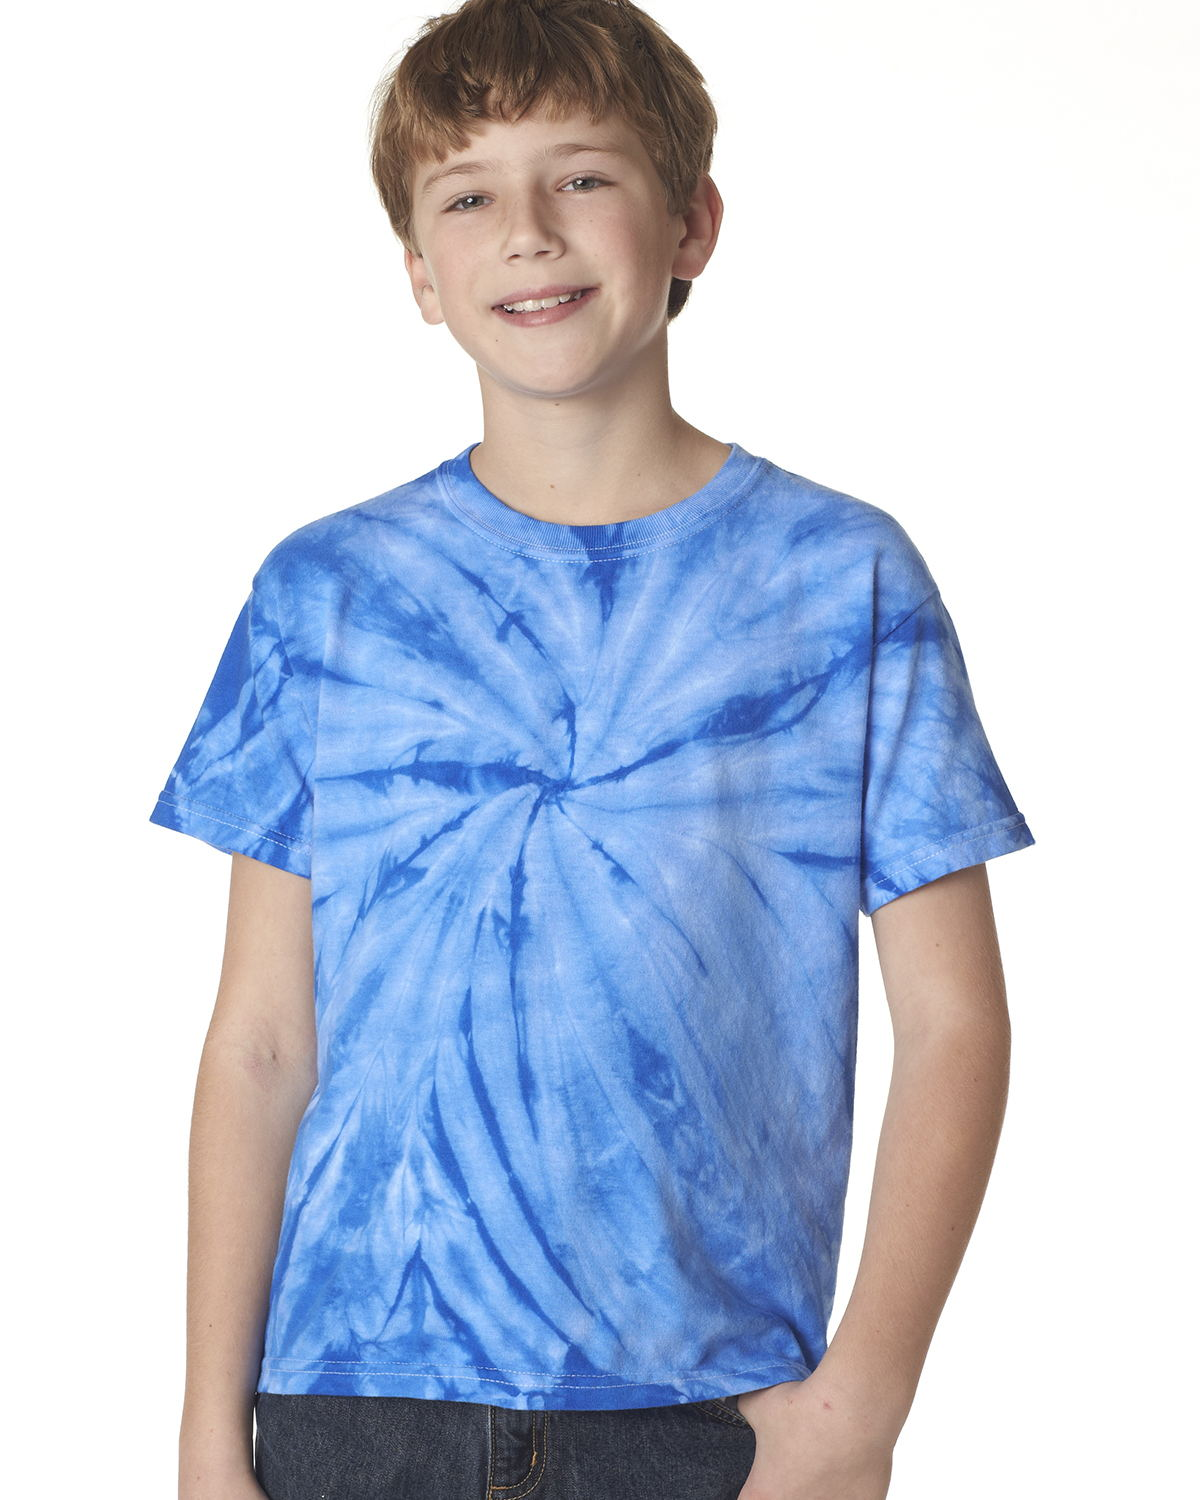 Tie-Dyed 20BCY - Youth Cyclone Vat-Dyed Pinwheel Short Sleeve T-Shirt